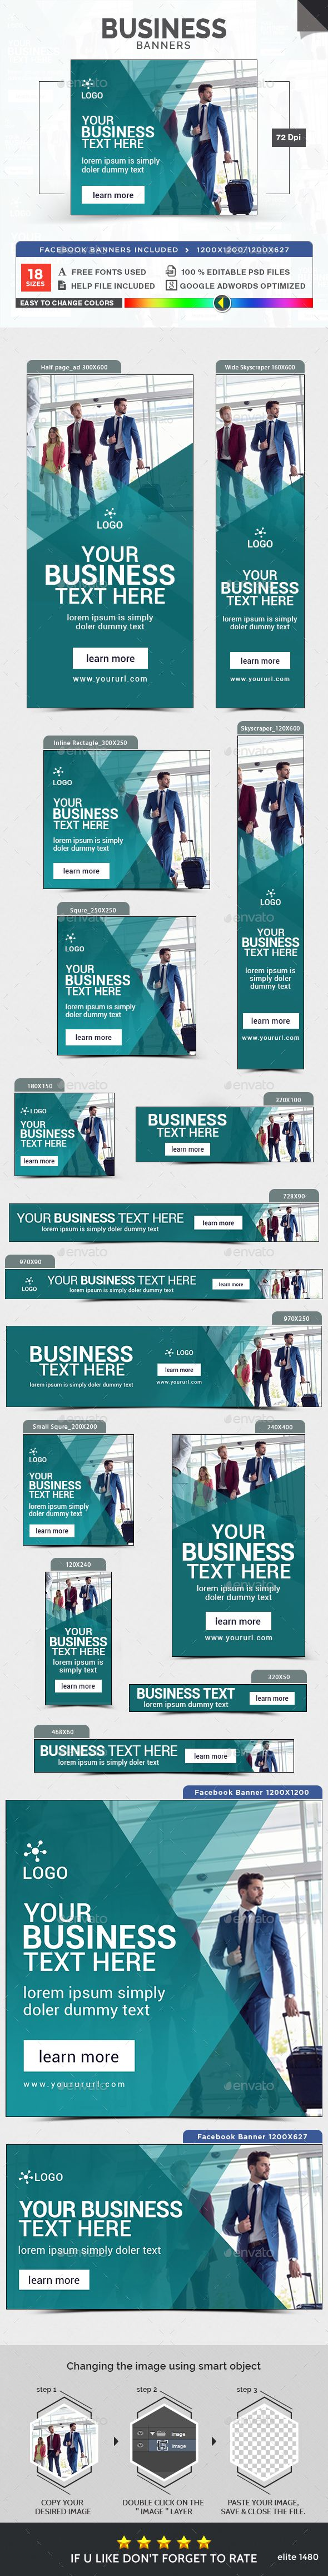 Business Banners Template PSD. Download here: http://graphicriver.net/item/business-banners/16092272?ref=ksioks